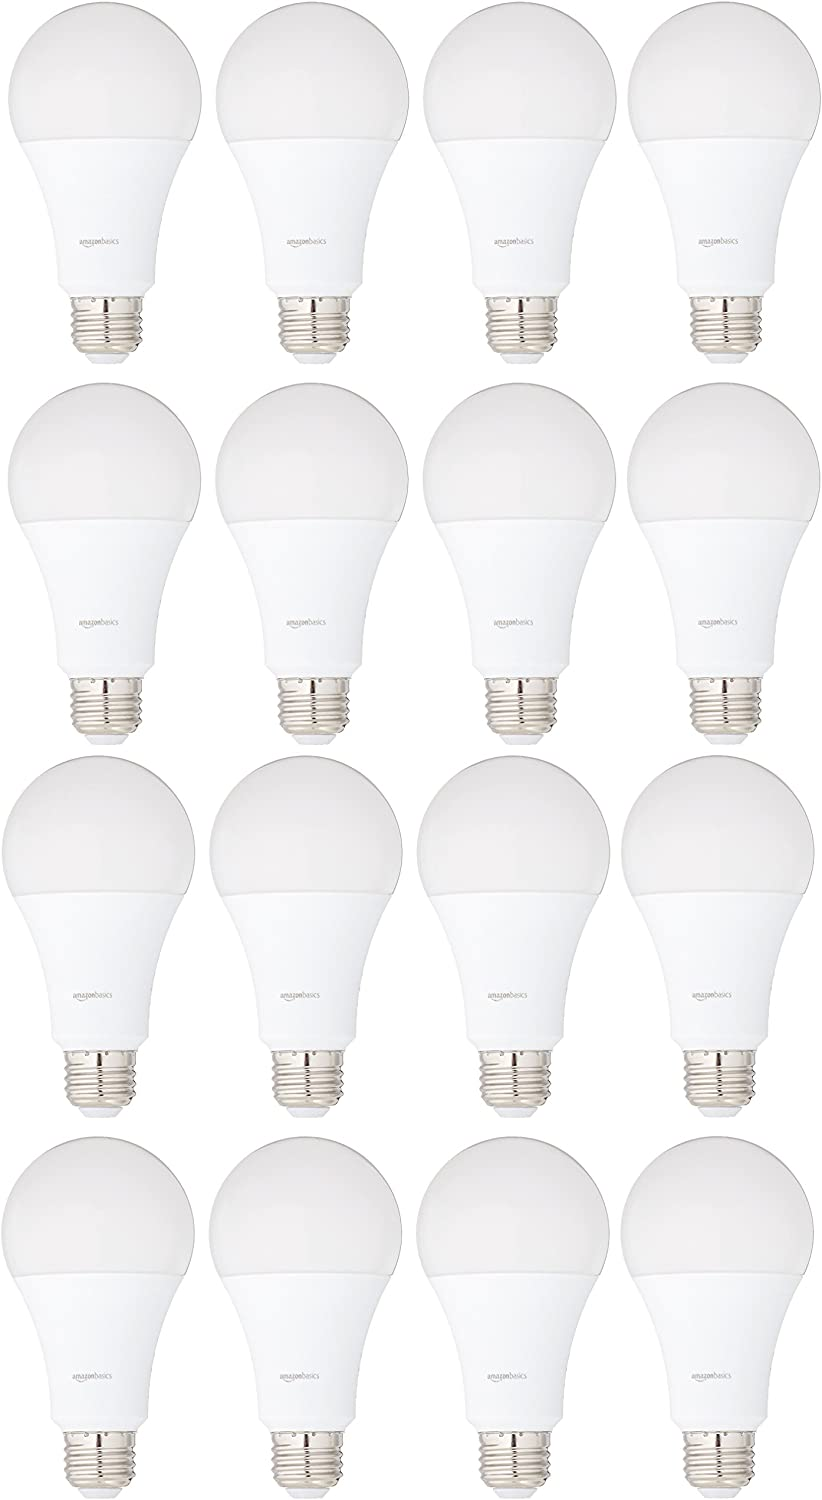 AmazonBasics 100 Watt Equivalent, Daylight, Non-Dimmable, 15,000 Hour Lifetime, A21 LED Light Bulb | 16-Pack